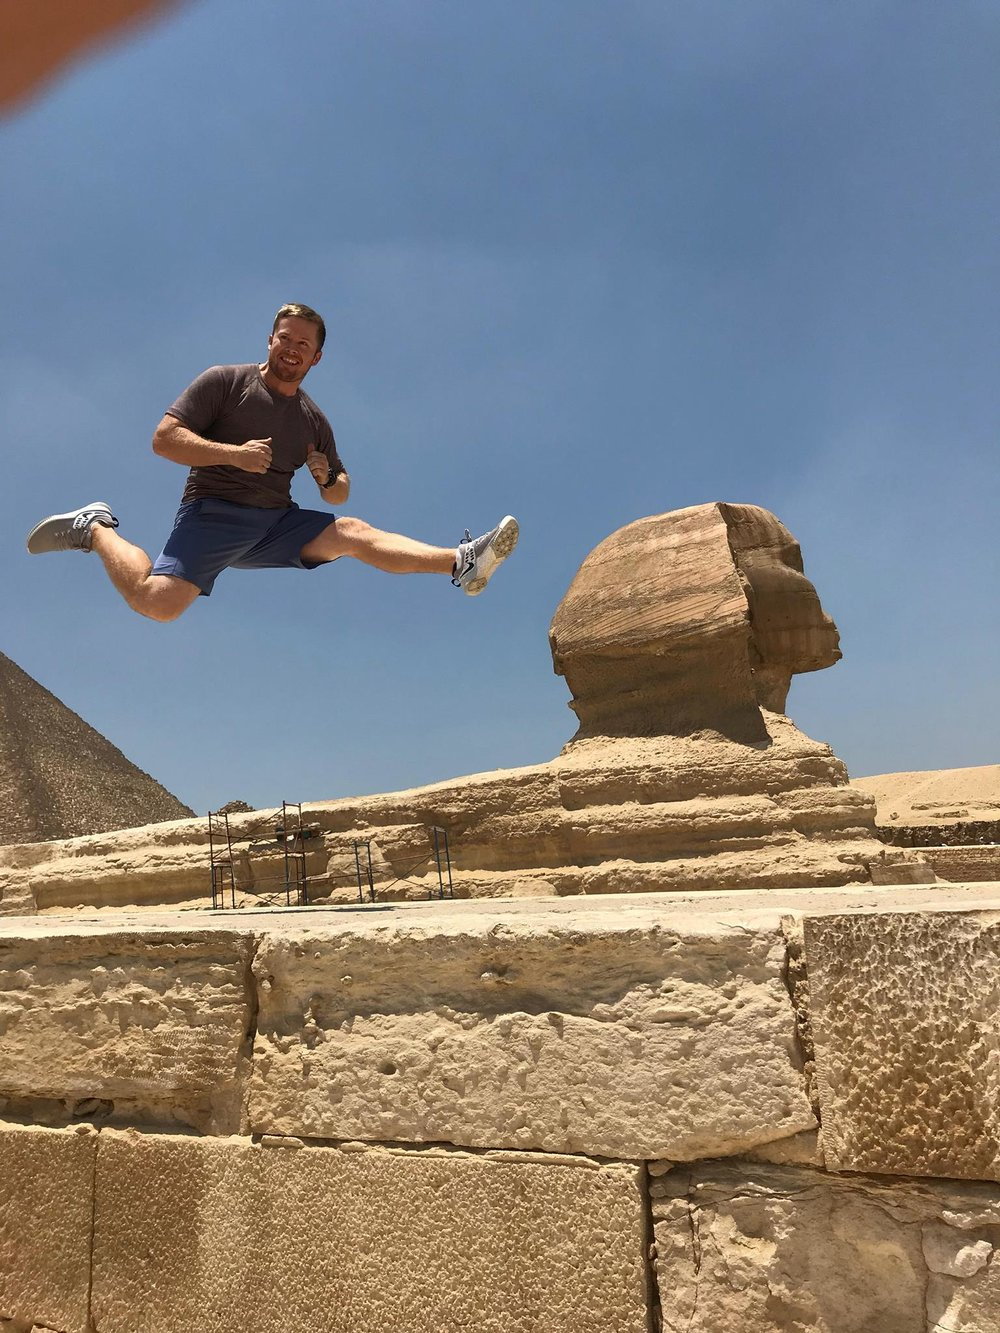 Brad showing is swole and flex skills on The Great Sphinx of Giza.